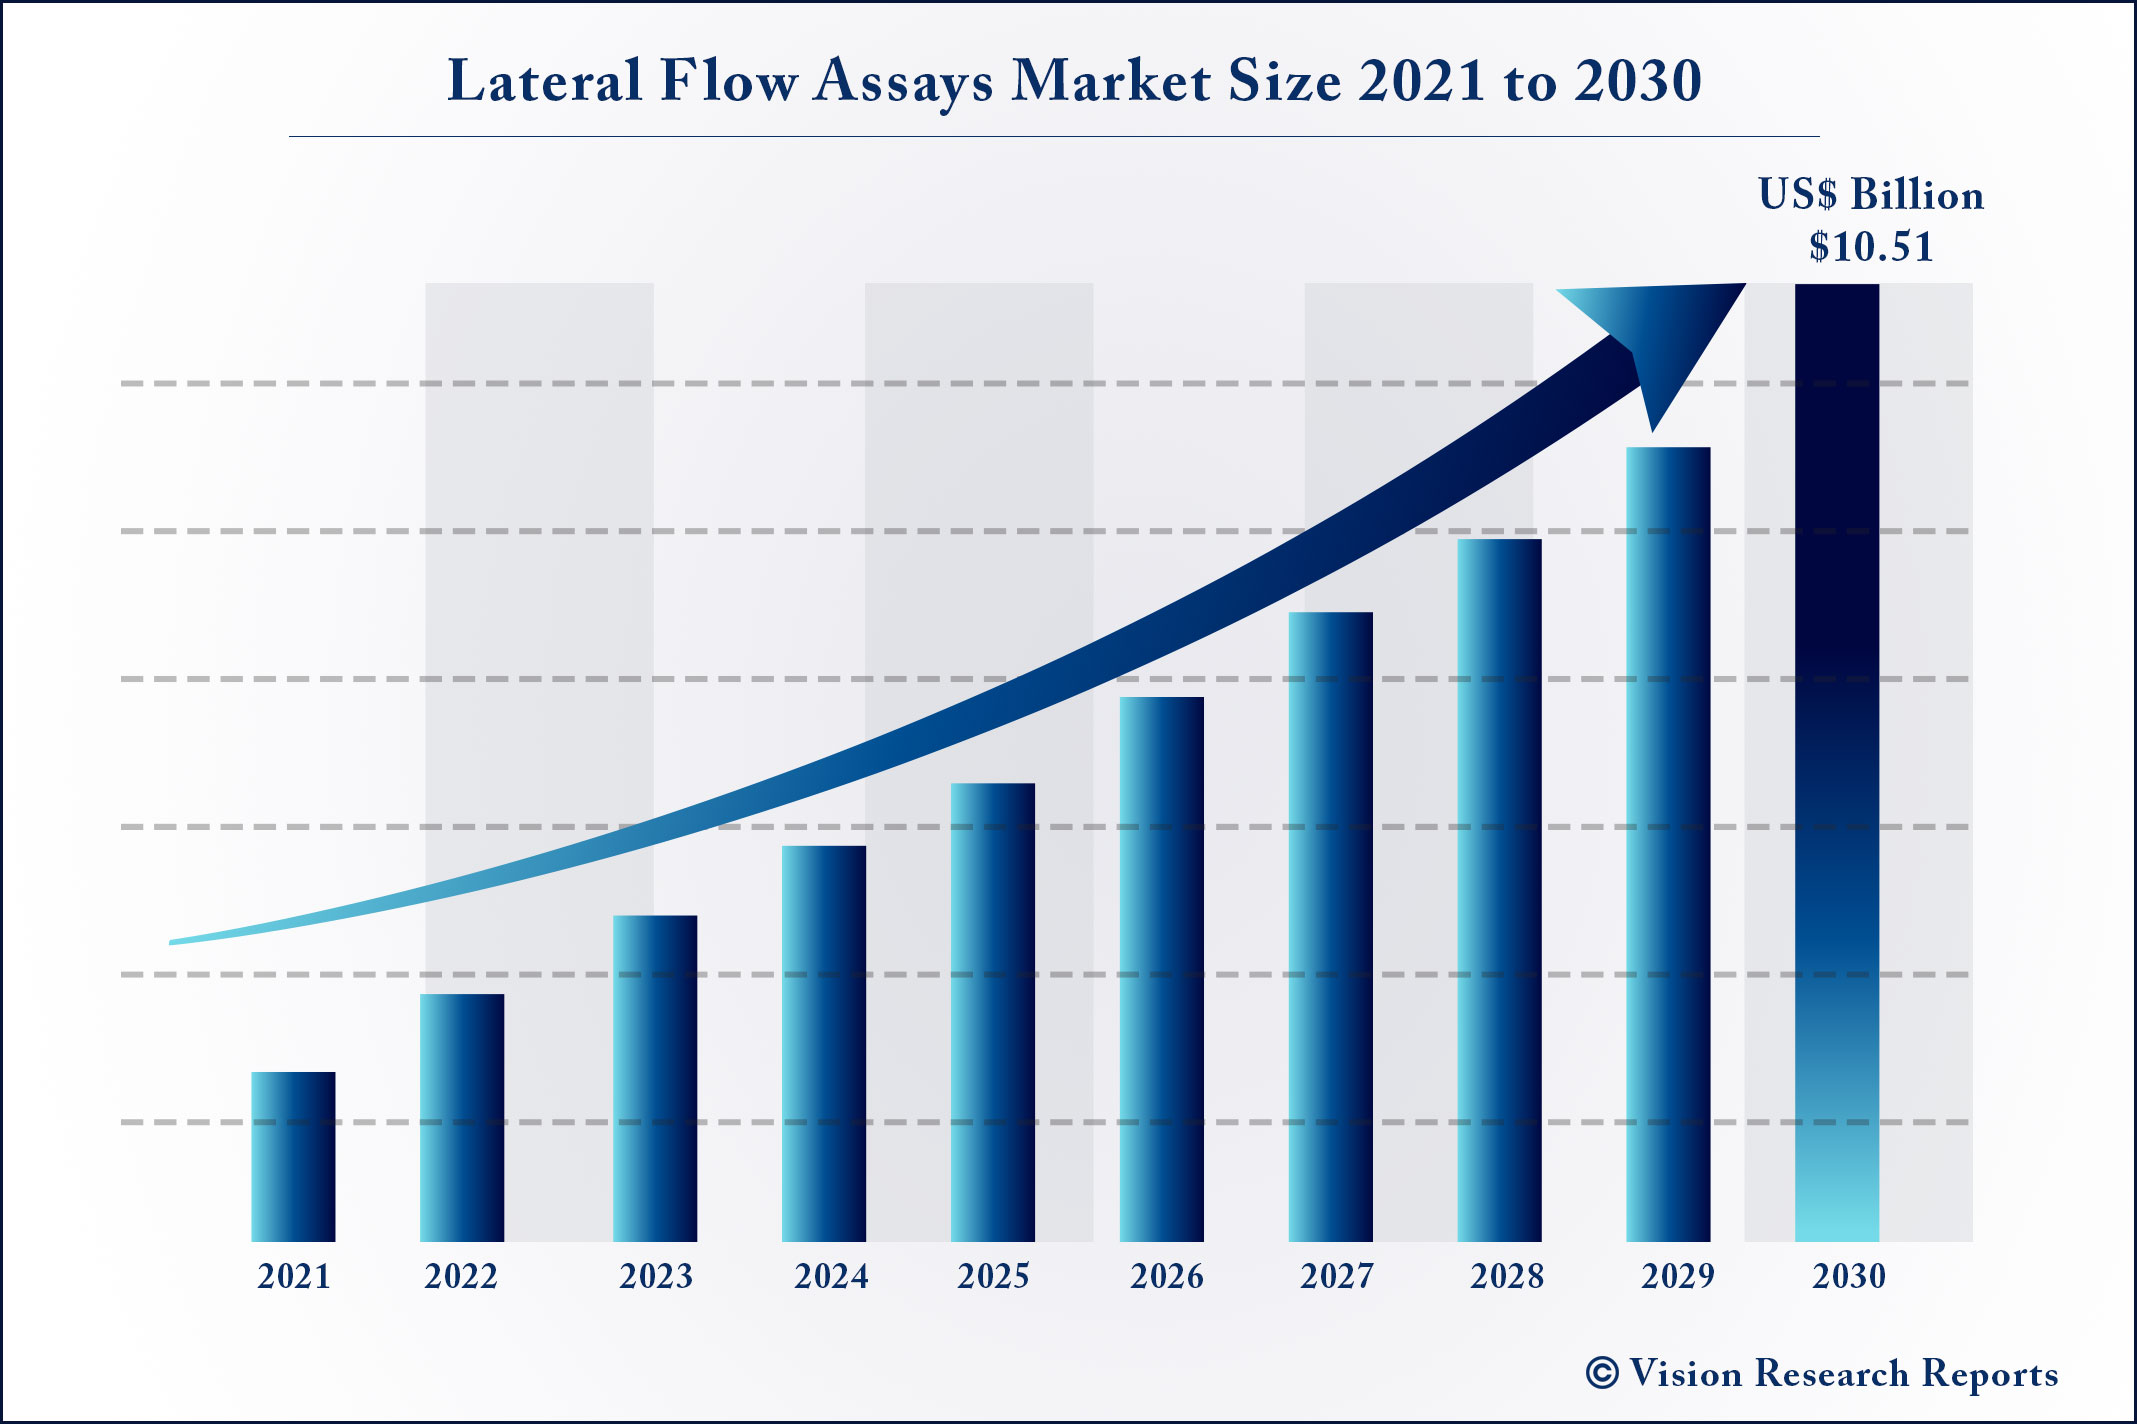 Lateral Flow Assays Market Size 2021 to 2030